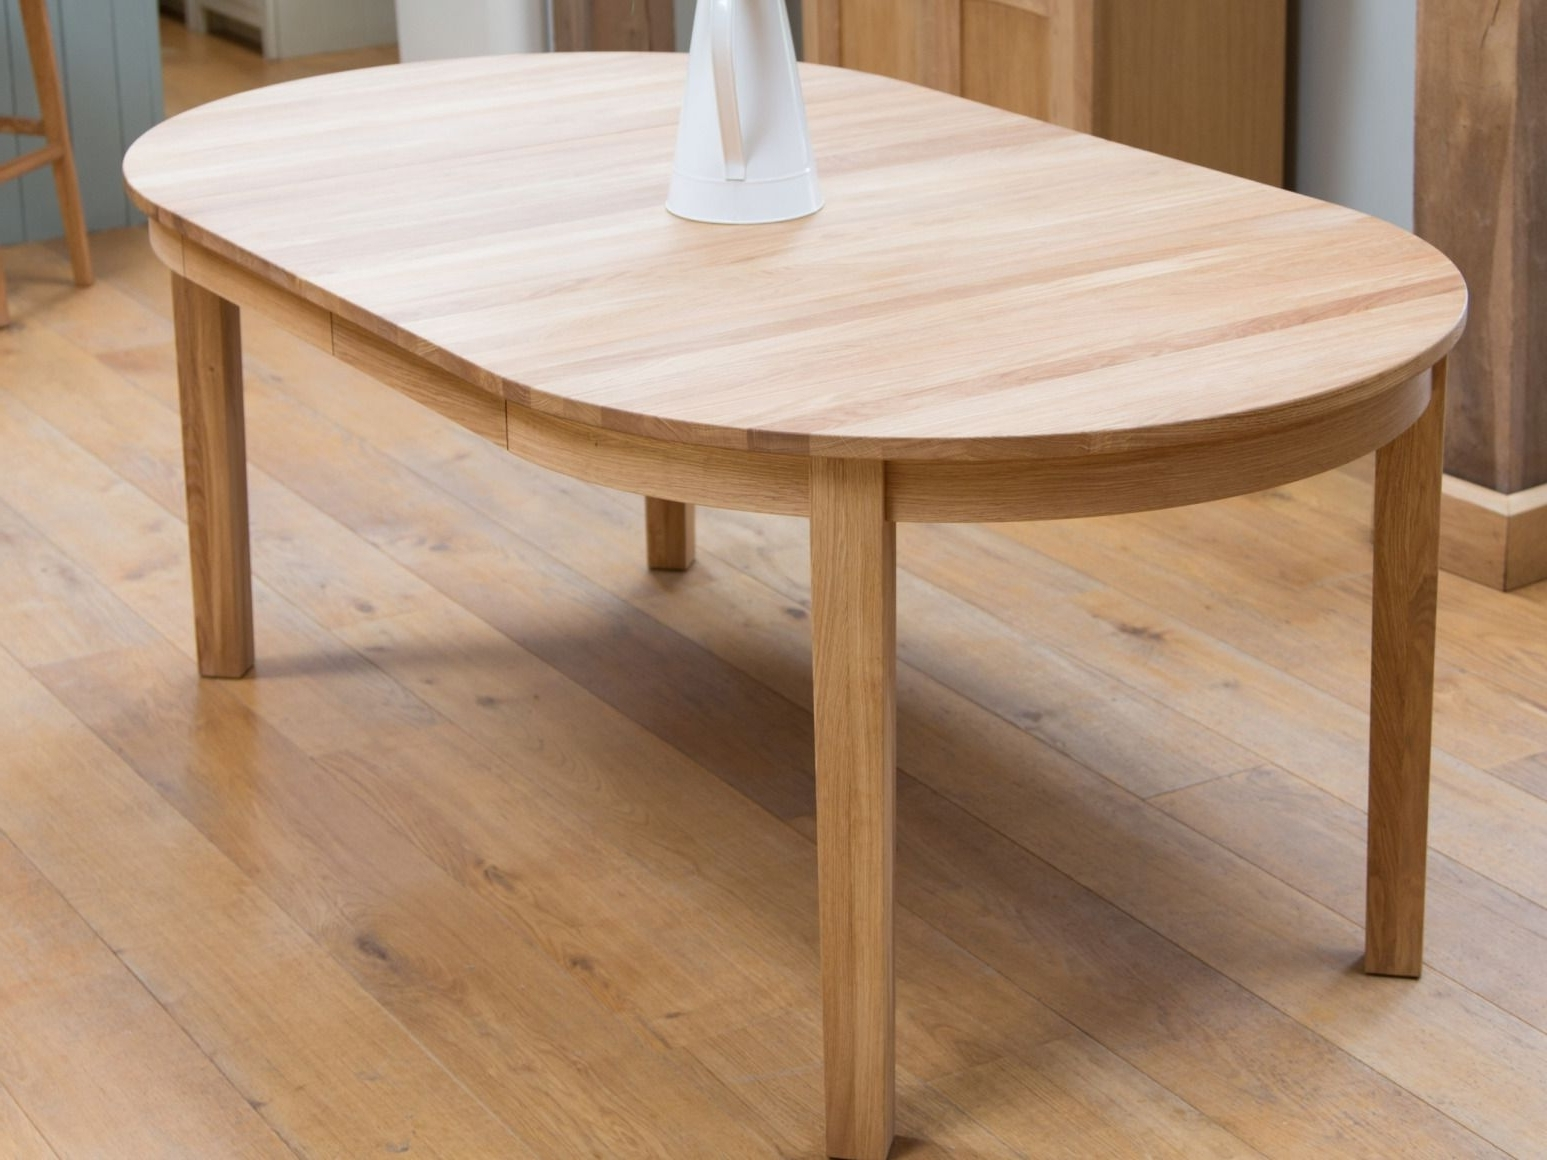 100+ Round Dining Table Extends To Oval – Best Way To Paint Throughout Most Current Round Dining Tables Extends To Oval (Gallery 11 of 25)